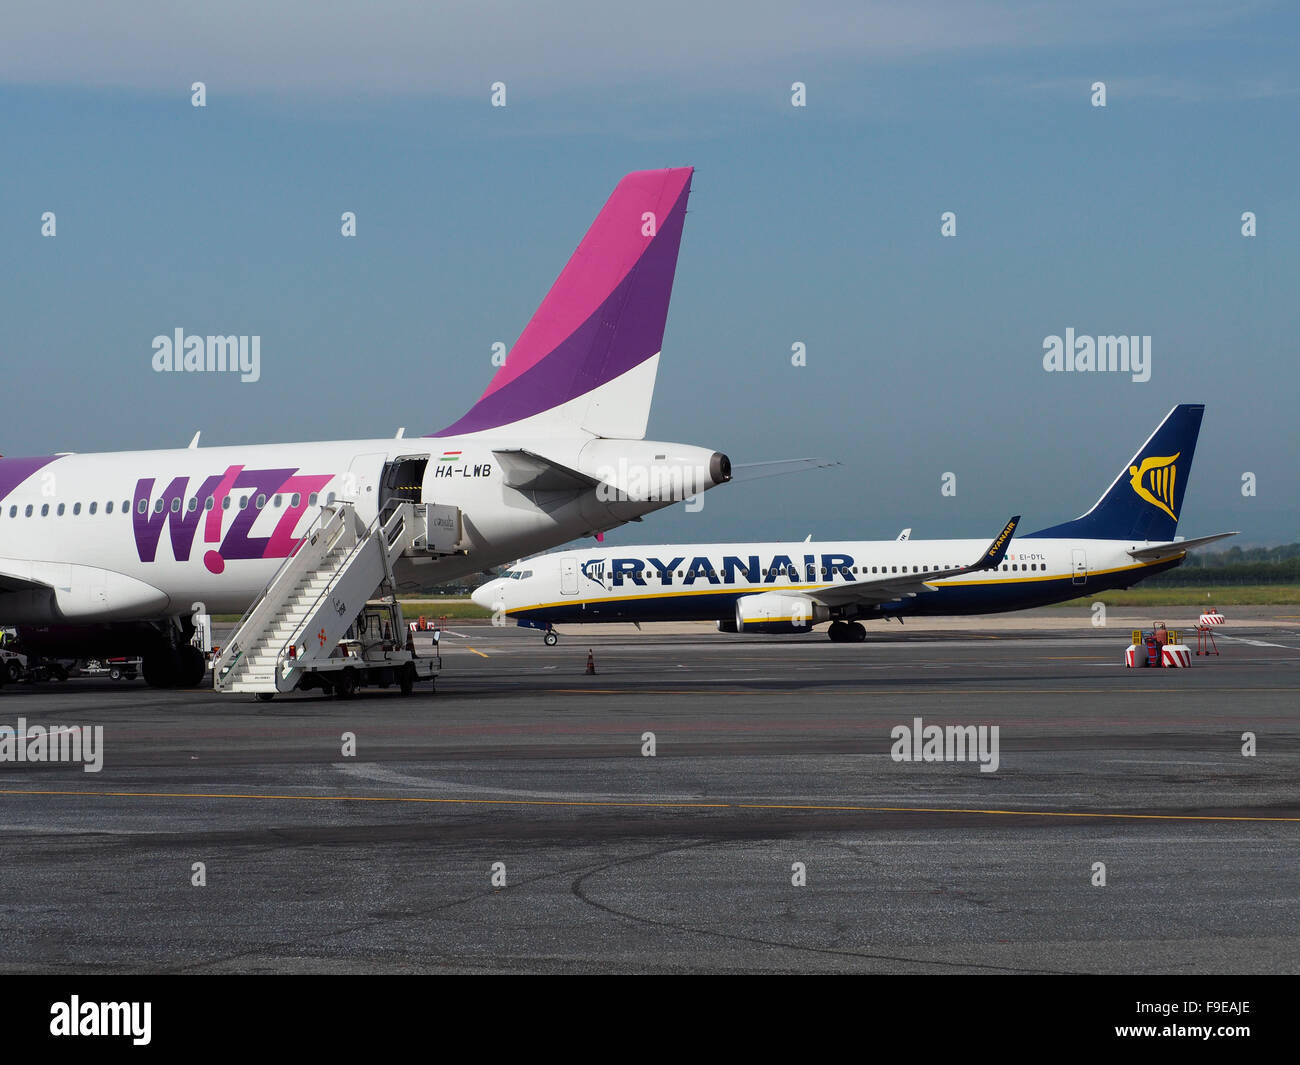 Low-cost airline aeroplanes at Ciampino airport in Rome, Italy - Stock Image